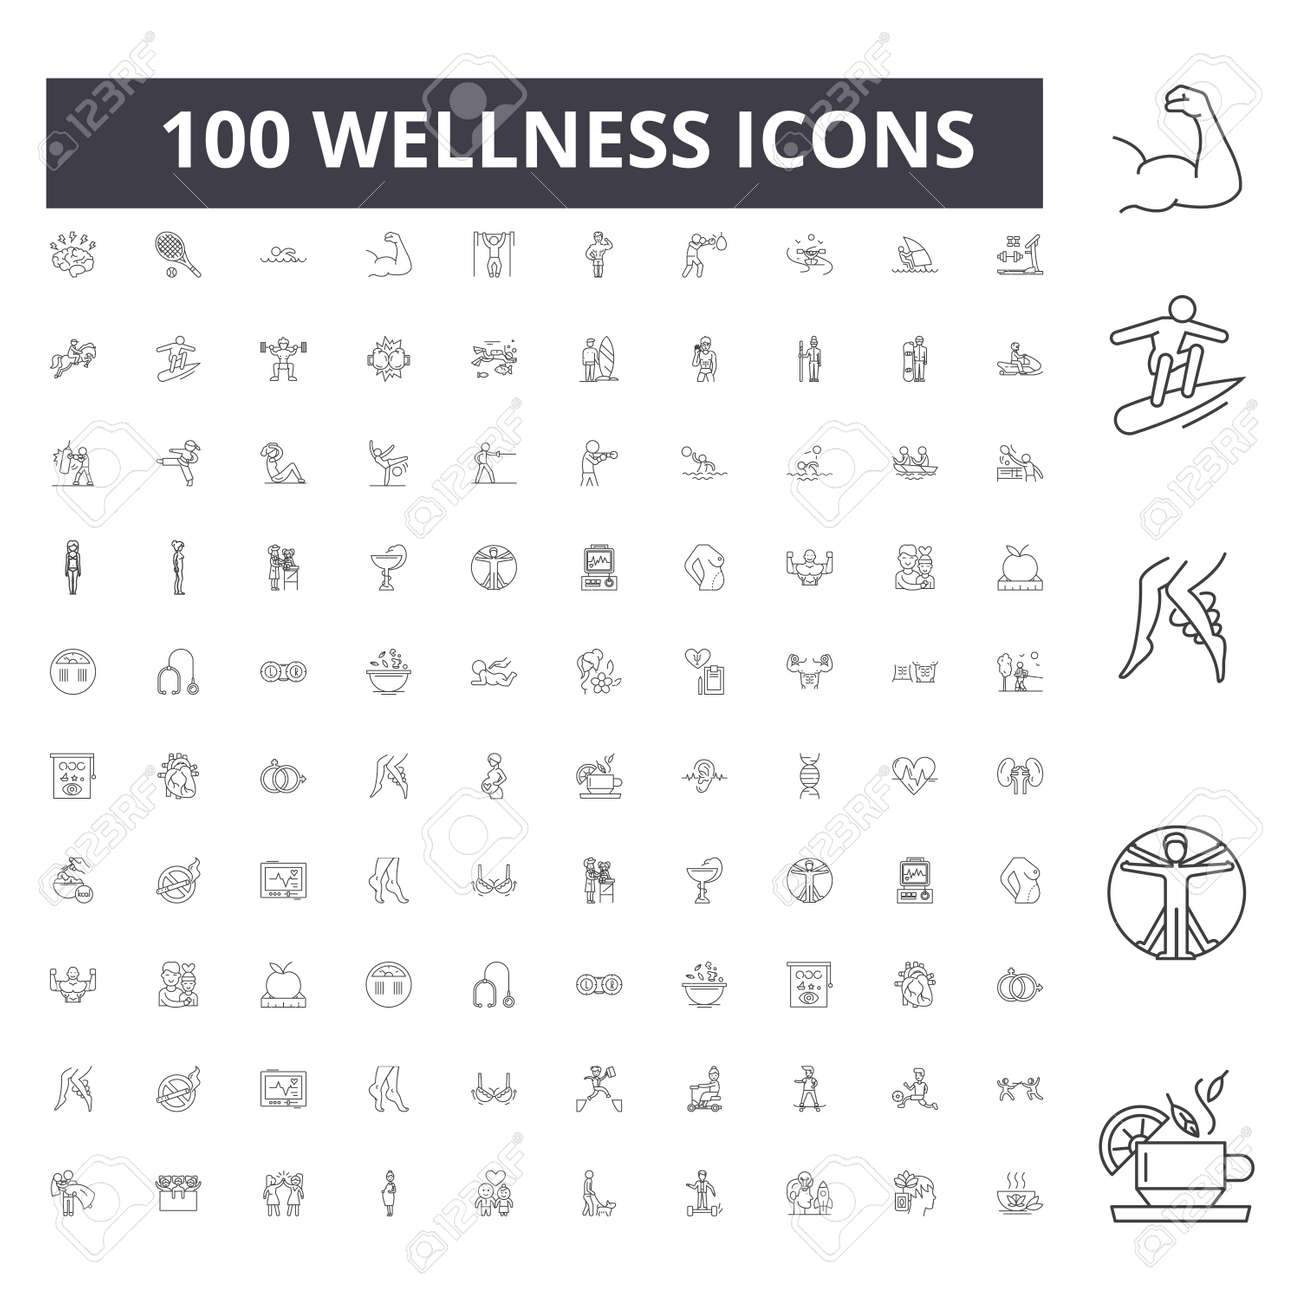 Wellness line icons, signs, vector set, outline concept illustration - 123723304